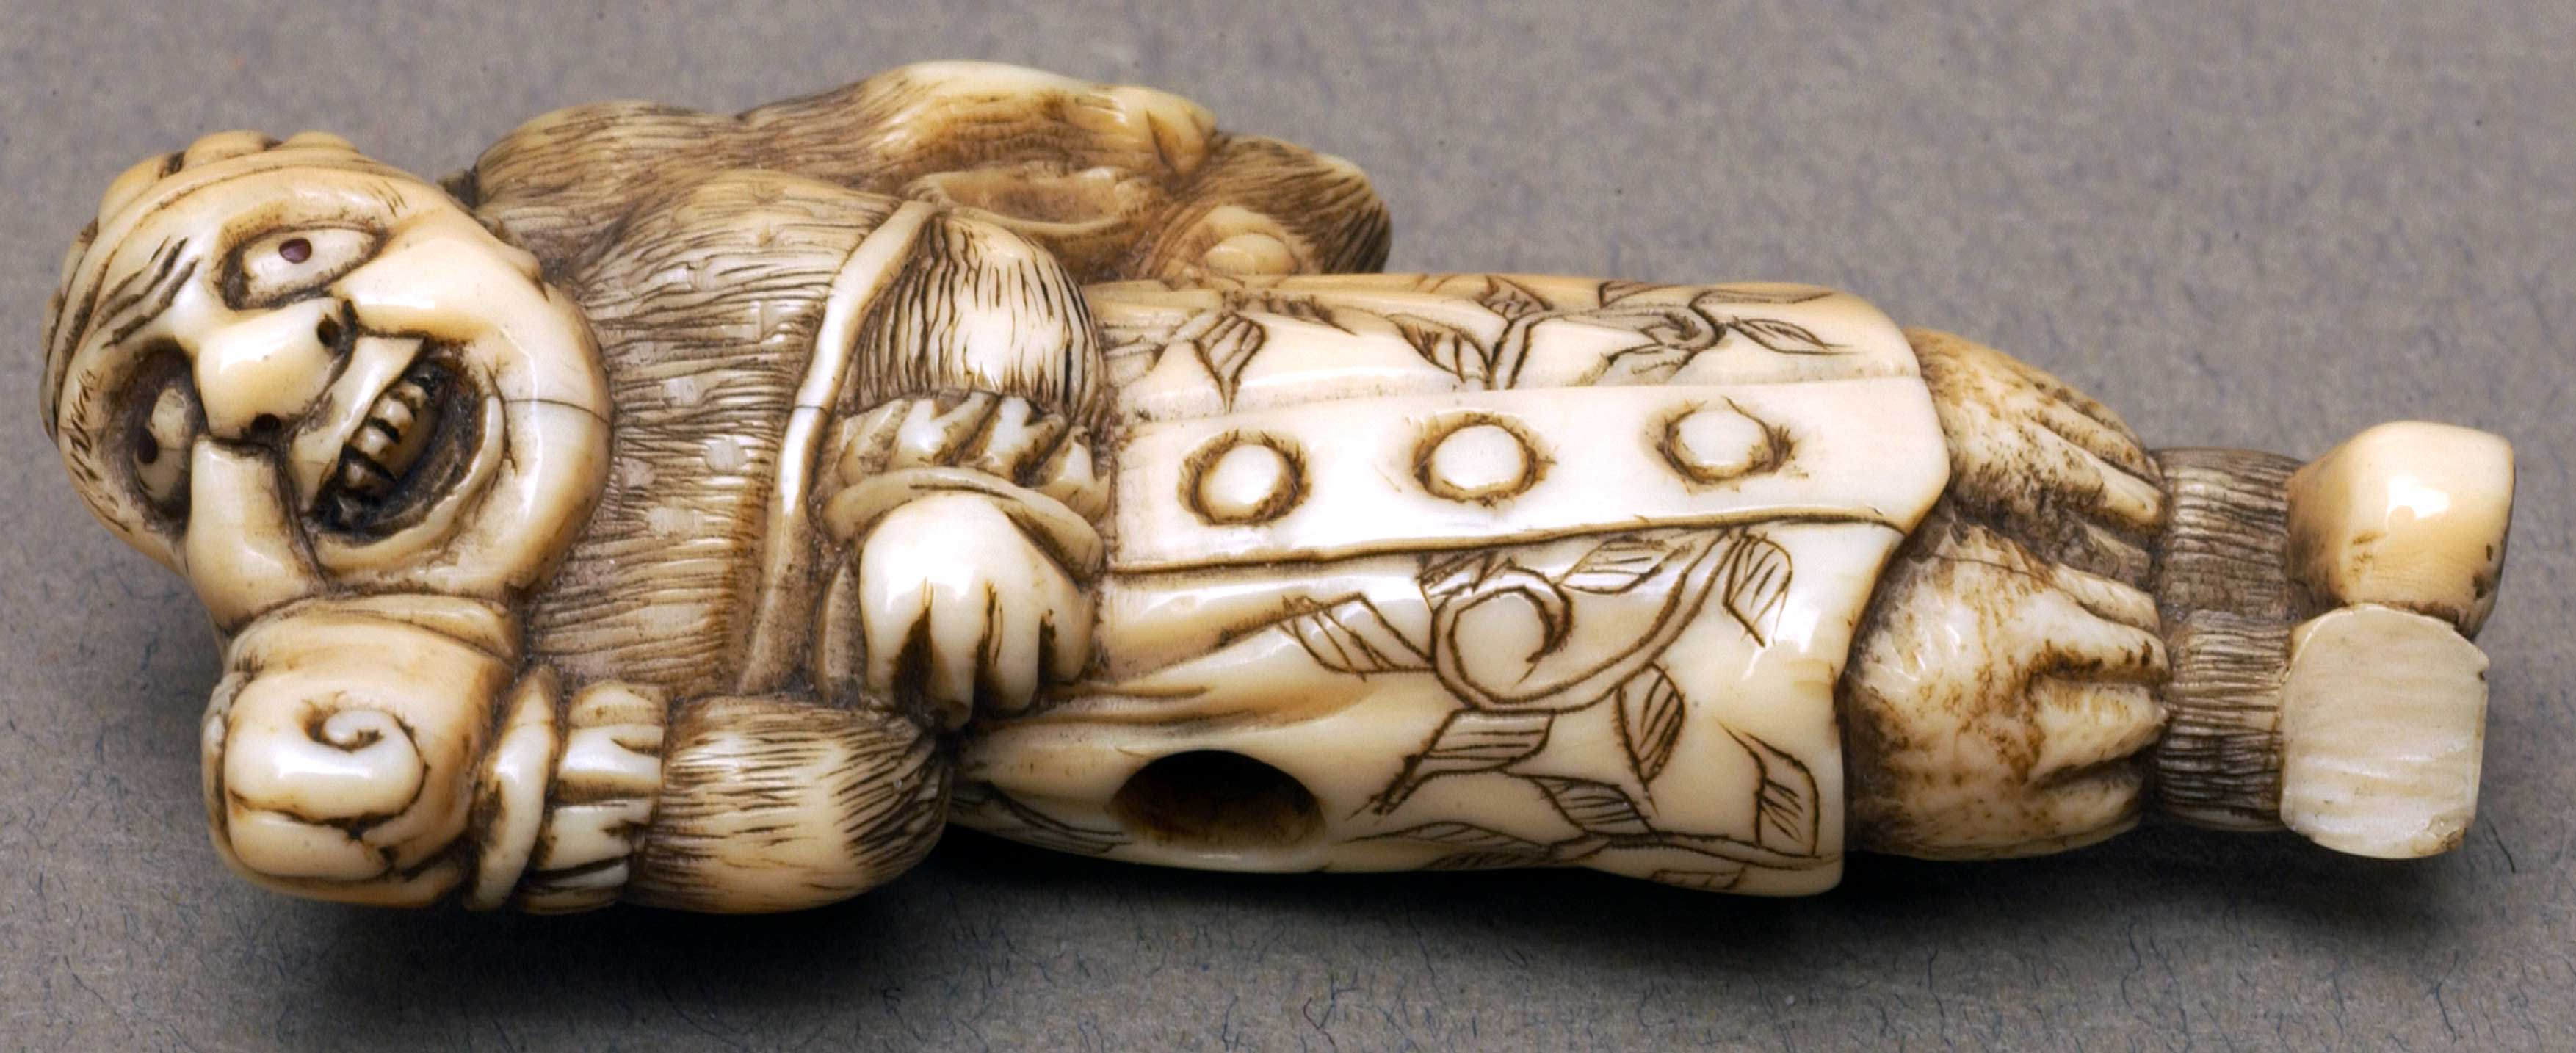 Netsuke depicting a man carrying a rabbit